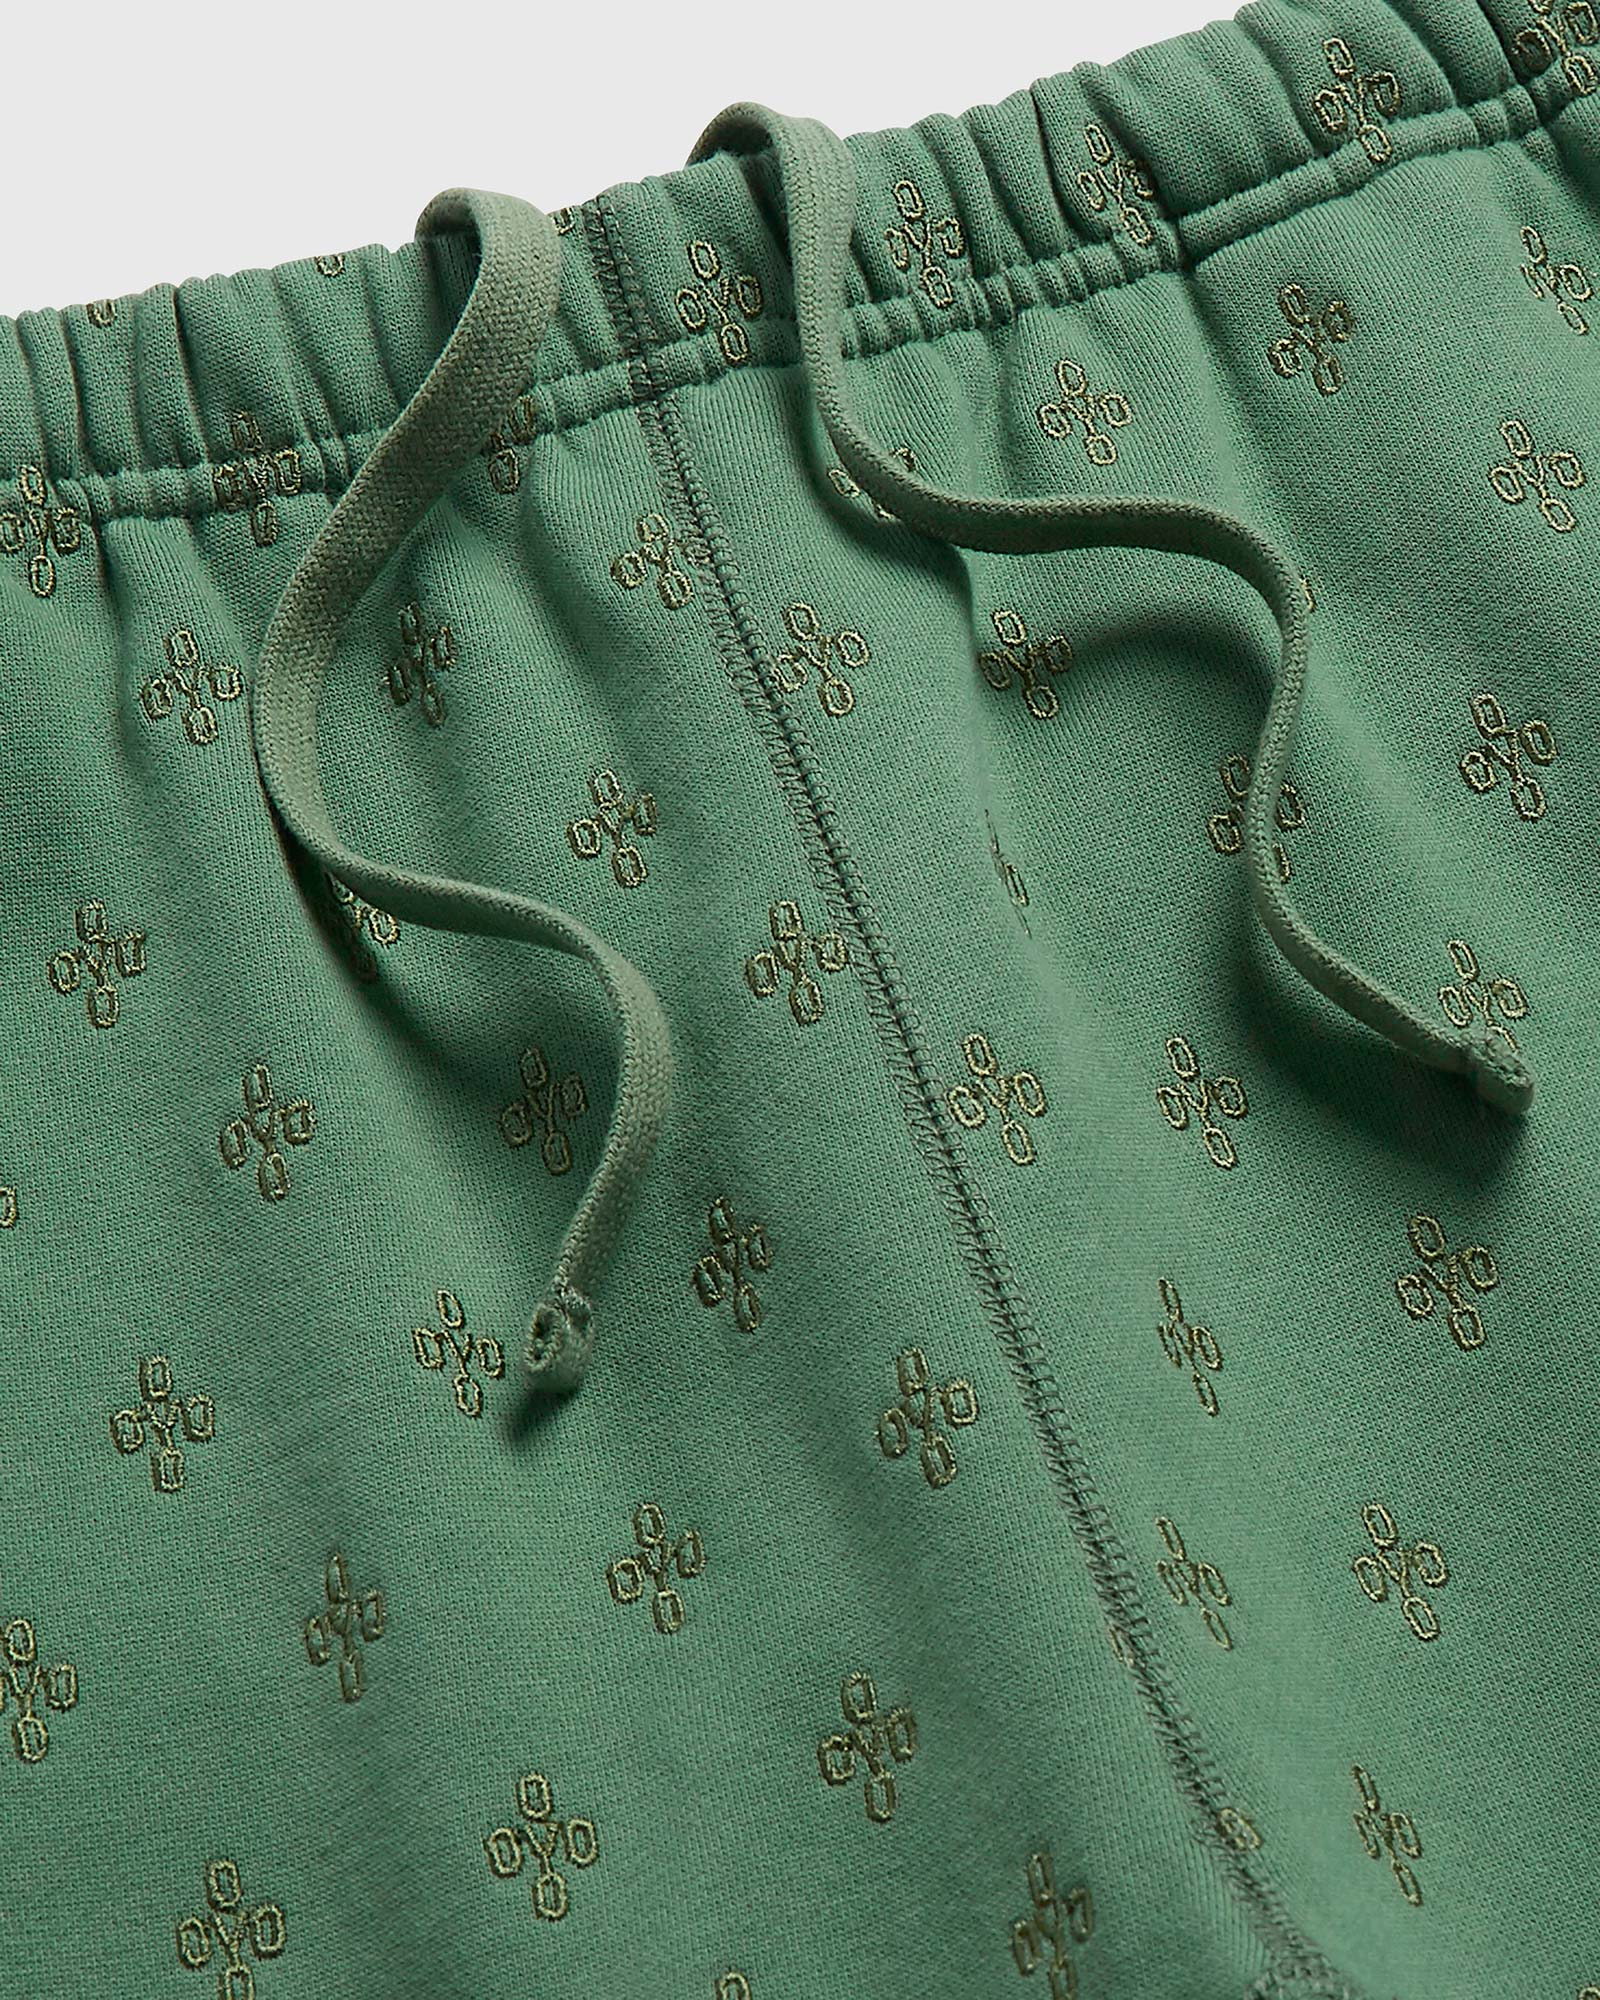 MONOGRAM SWEATPANT - EVERGREEN IMAGE #3